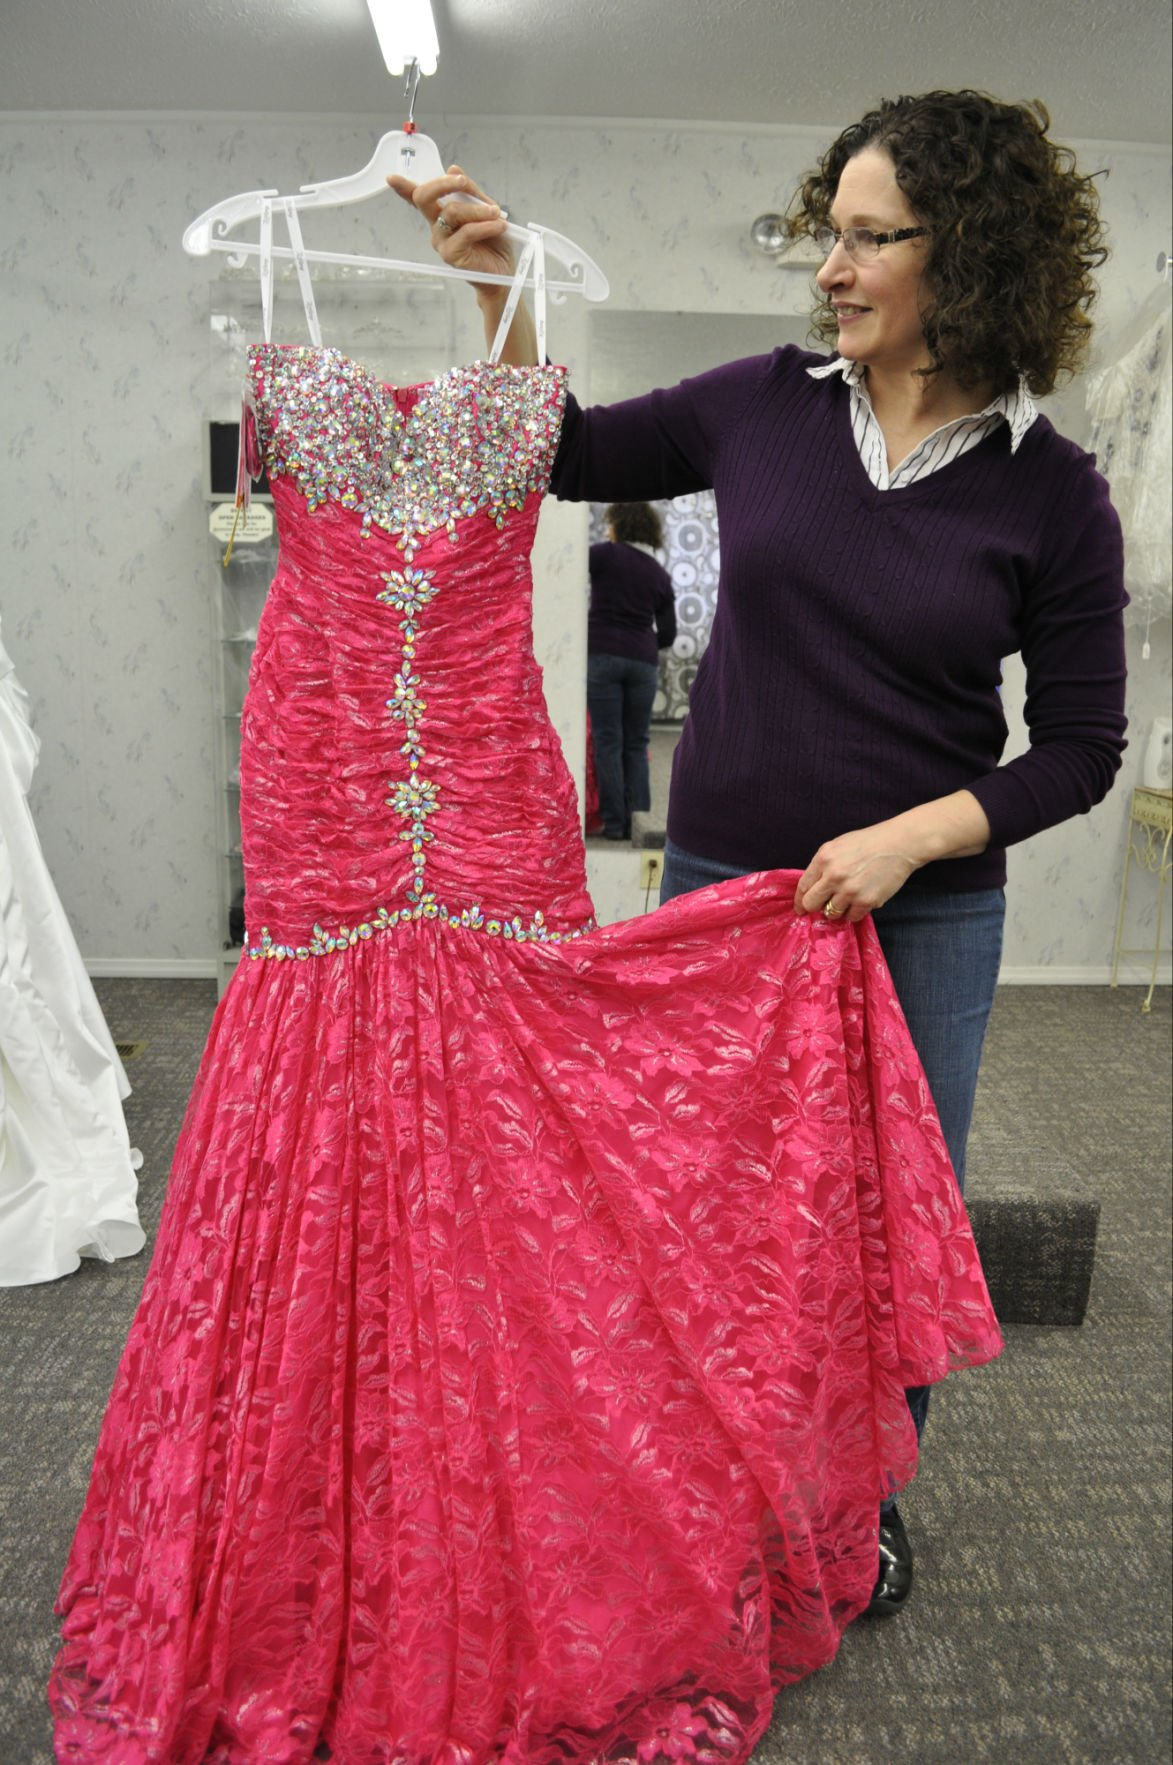 Kuhn\'s: Making bridal wear a north central Ohio business | Business ...